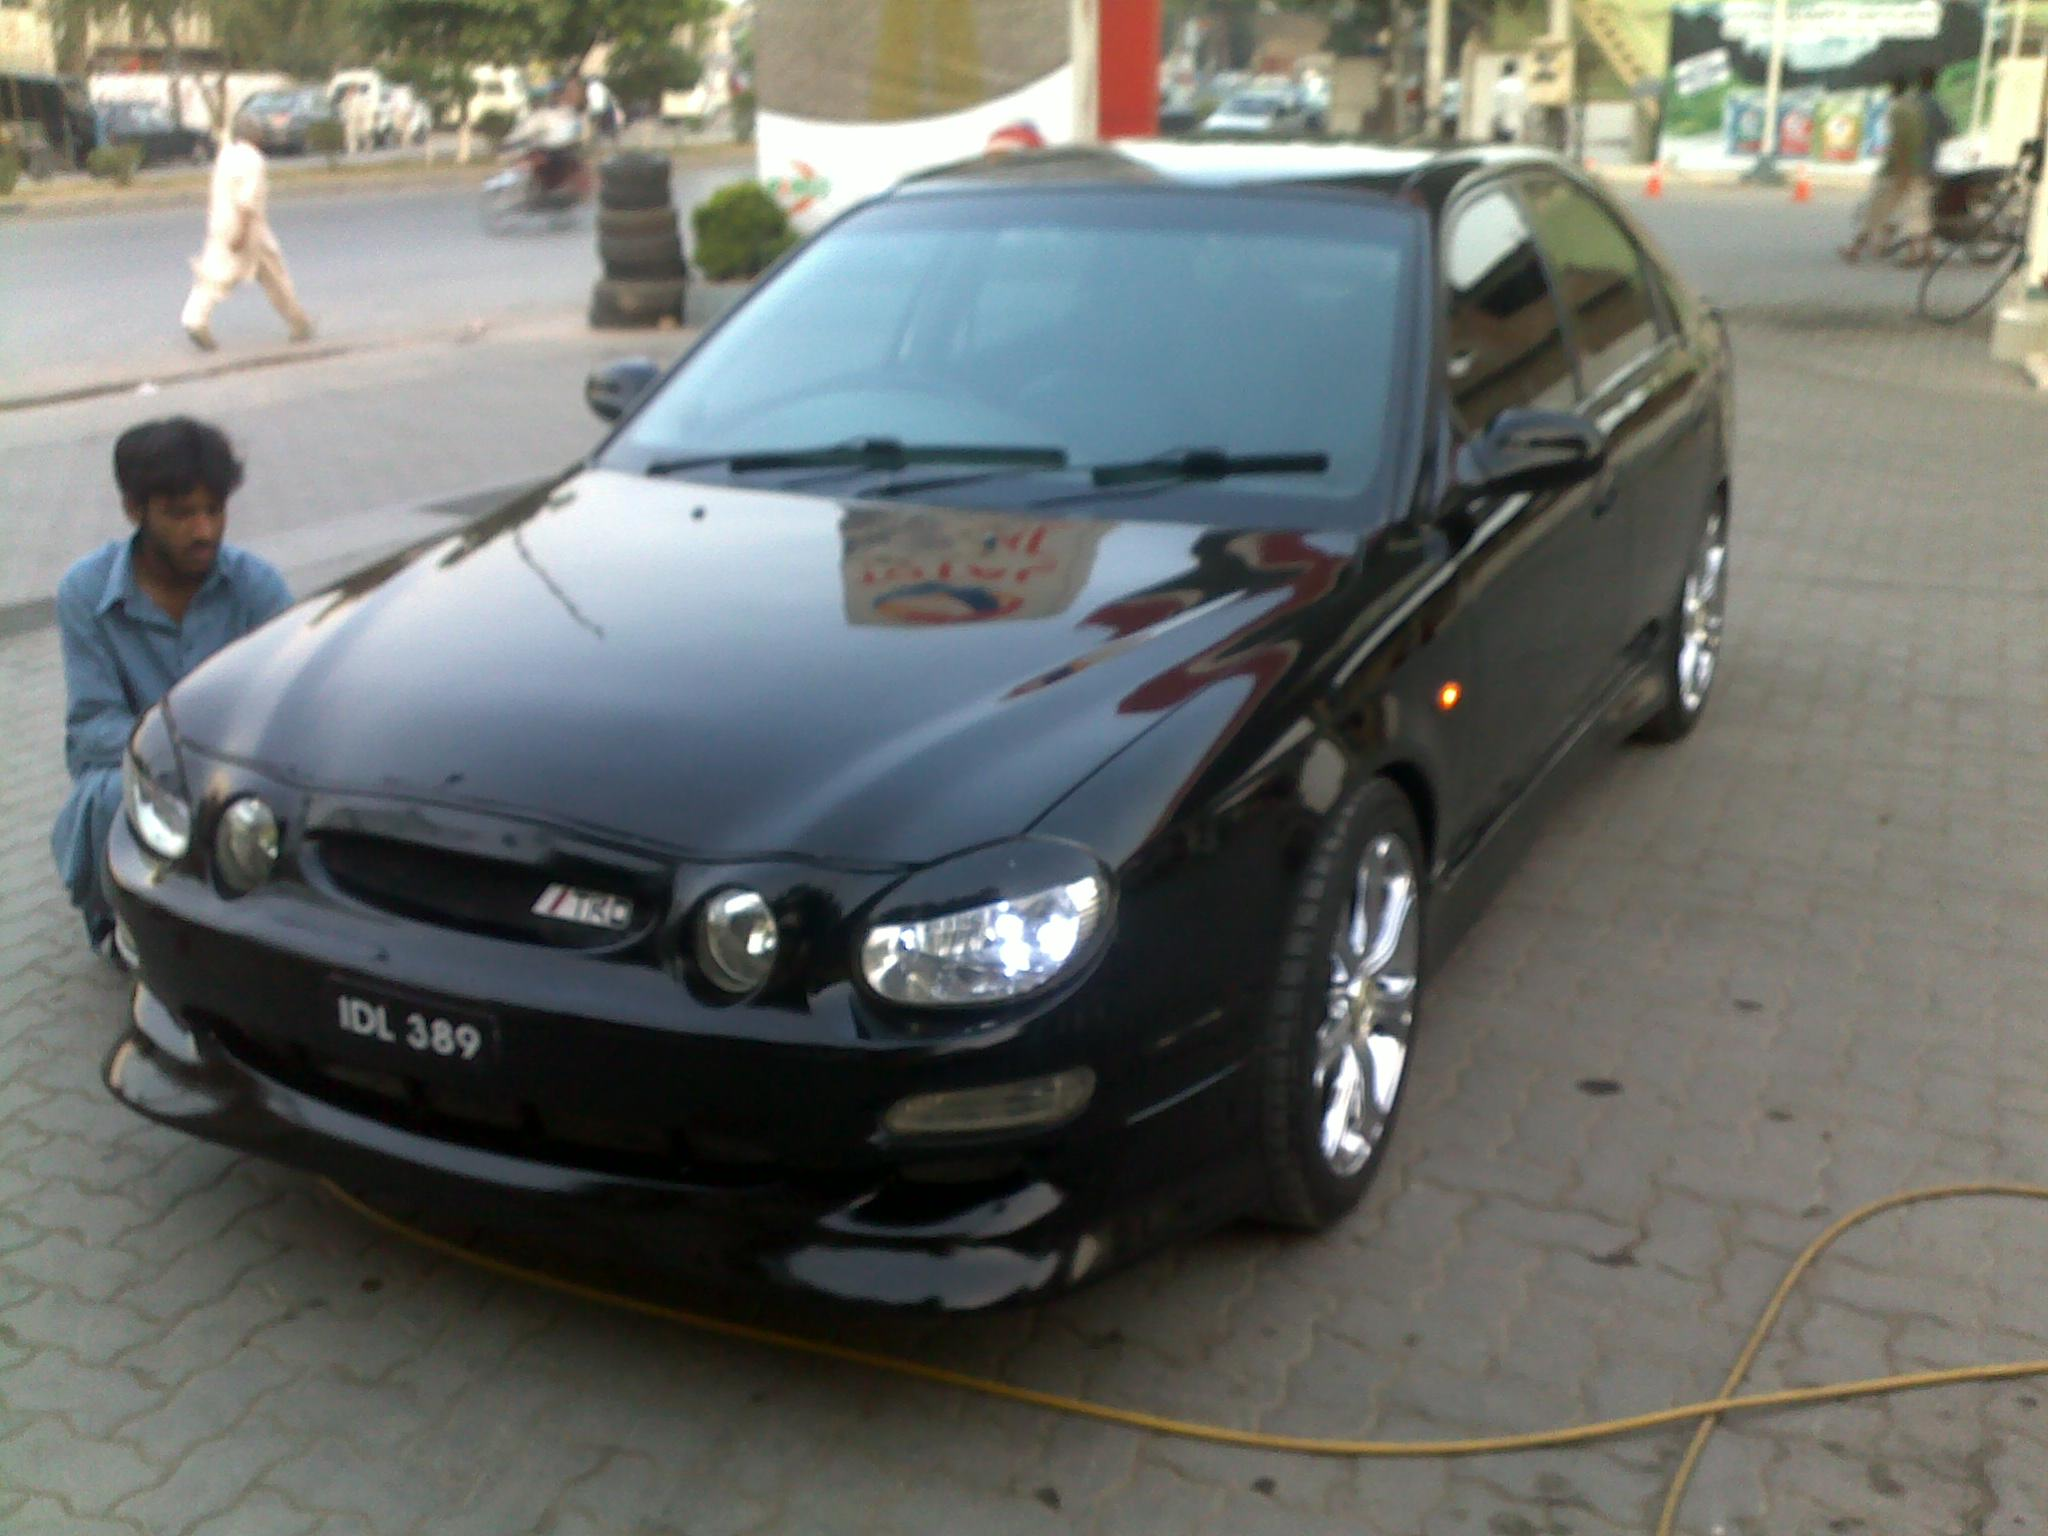 Car Auction Prices >> KIA Spectra 2002 of zain8 - Member Ride 15090 | PakWheels